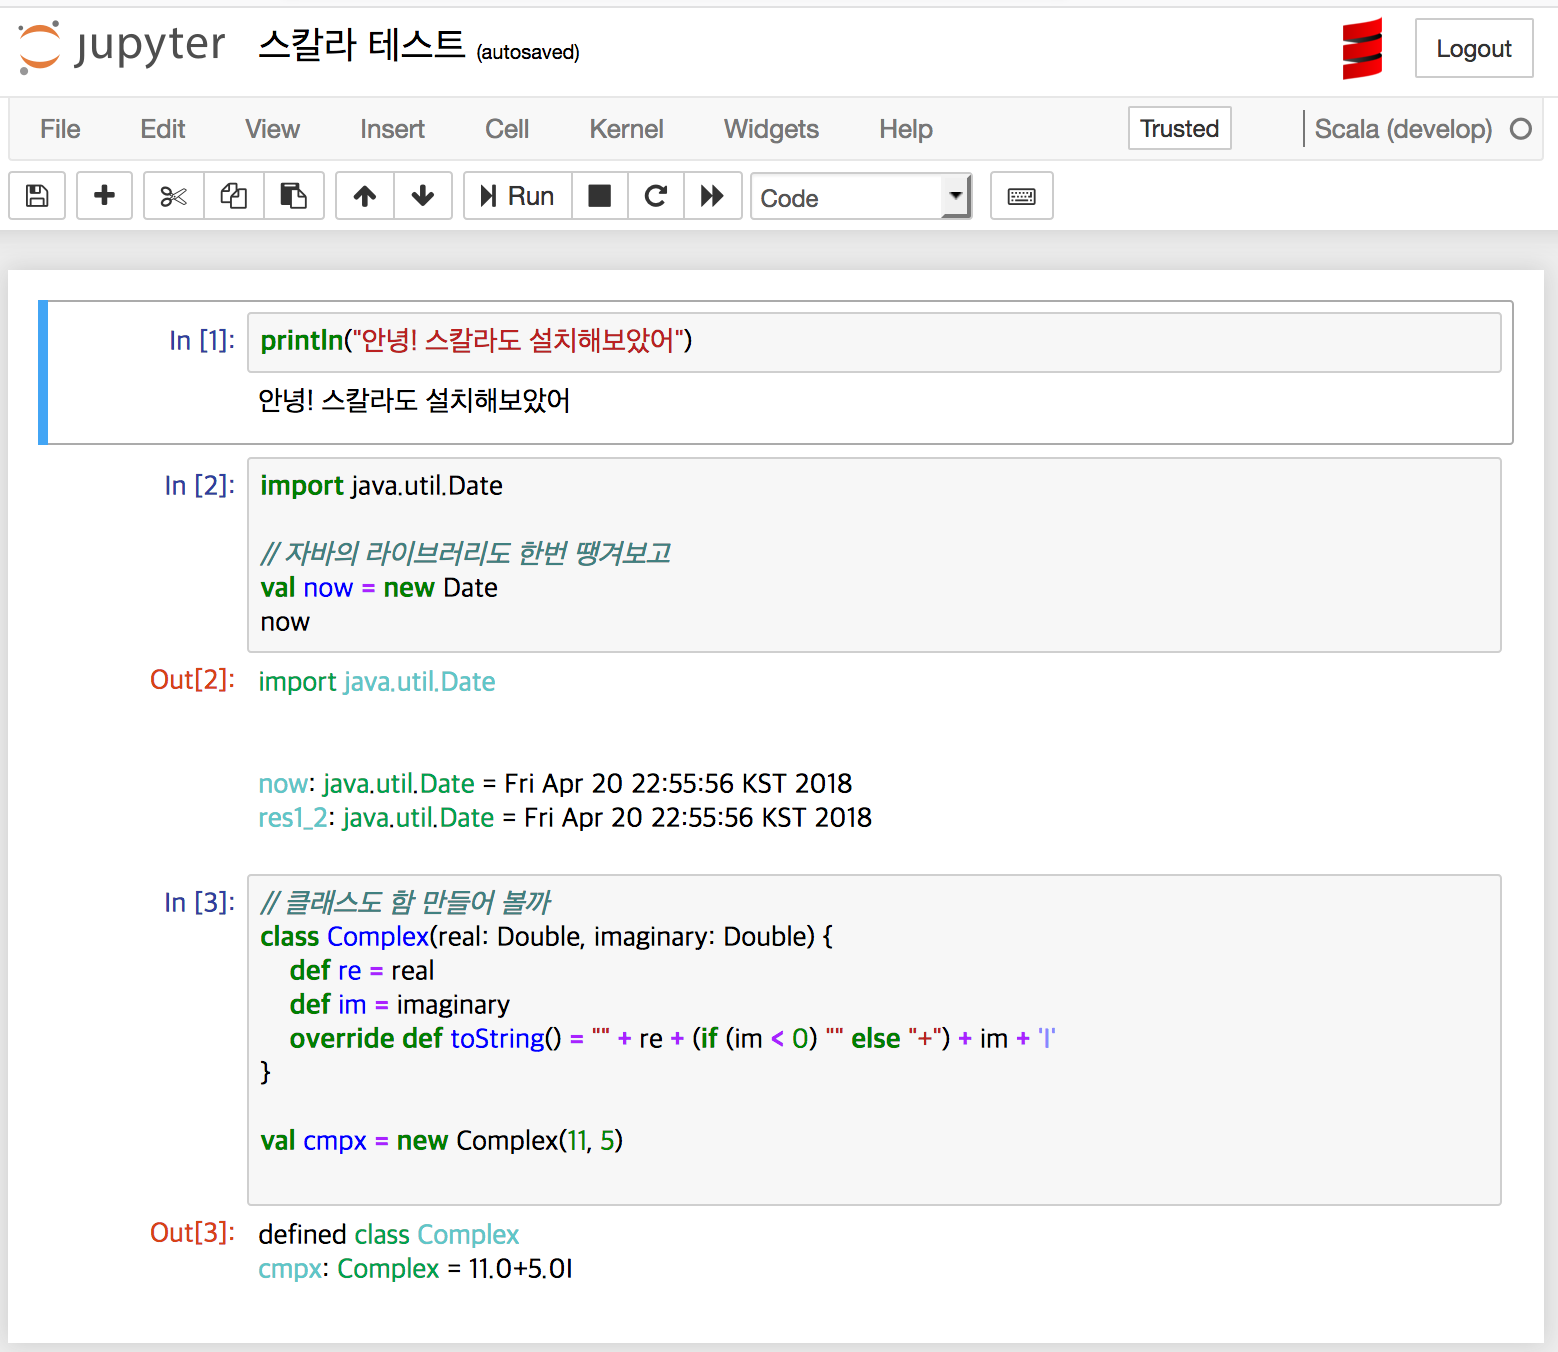 jupyter notebook에 scala 커널 올려보기